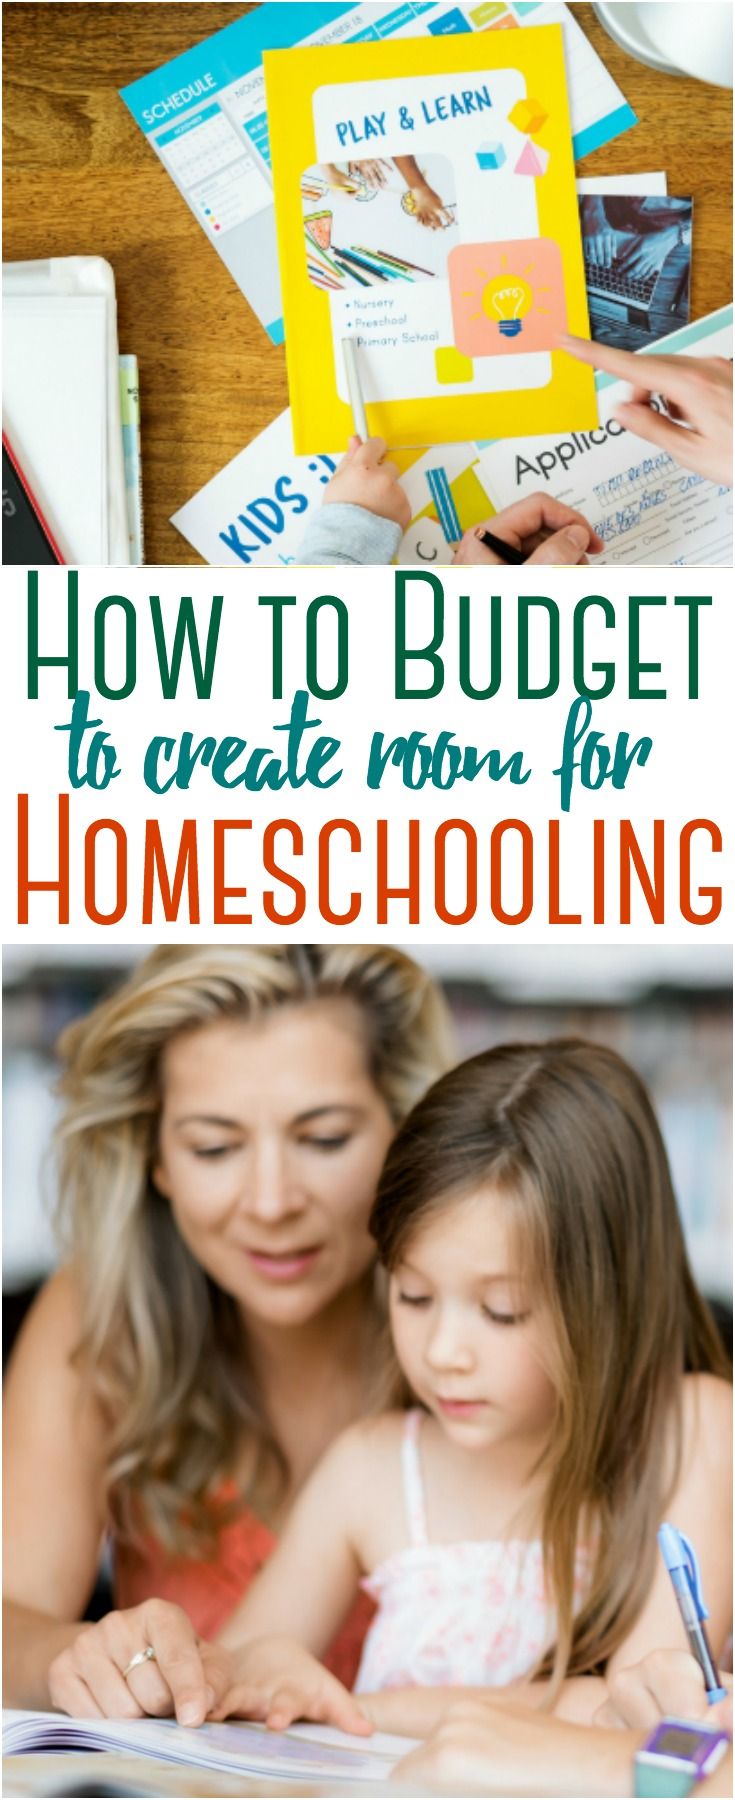 Homeschooling can get quite costly ~ thankfully there are ways to save to make it possible. Here are some tips to budget in order to make homeschooling a reality for your family.  #homeschool #budget #finance #money #savingmoney